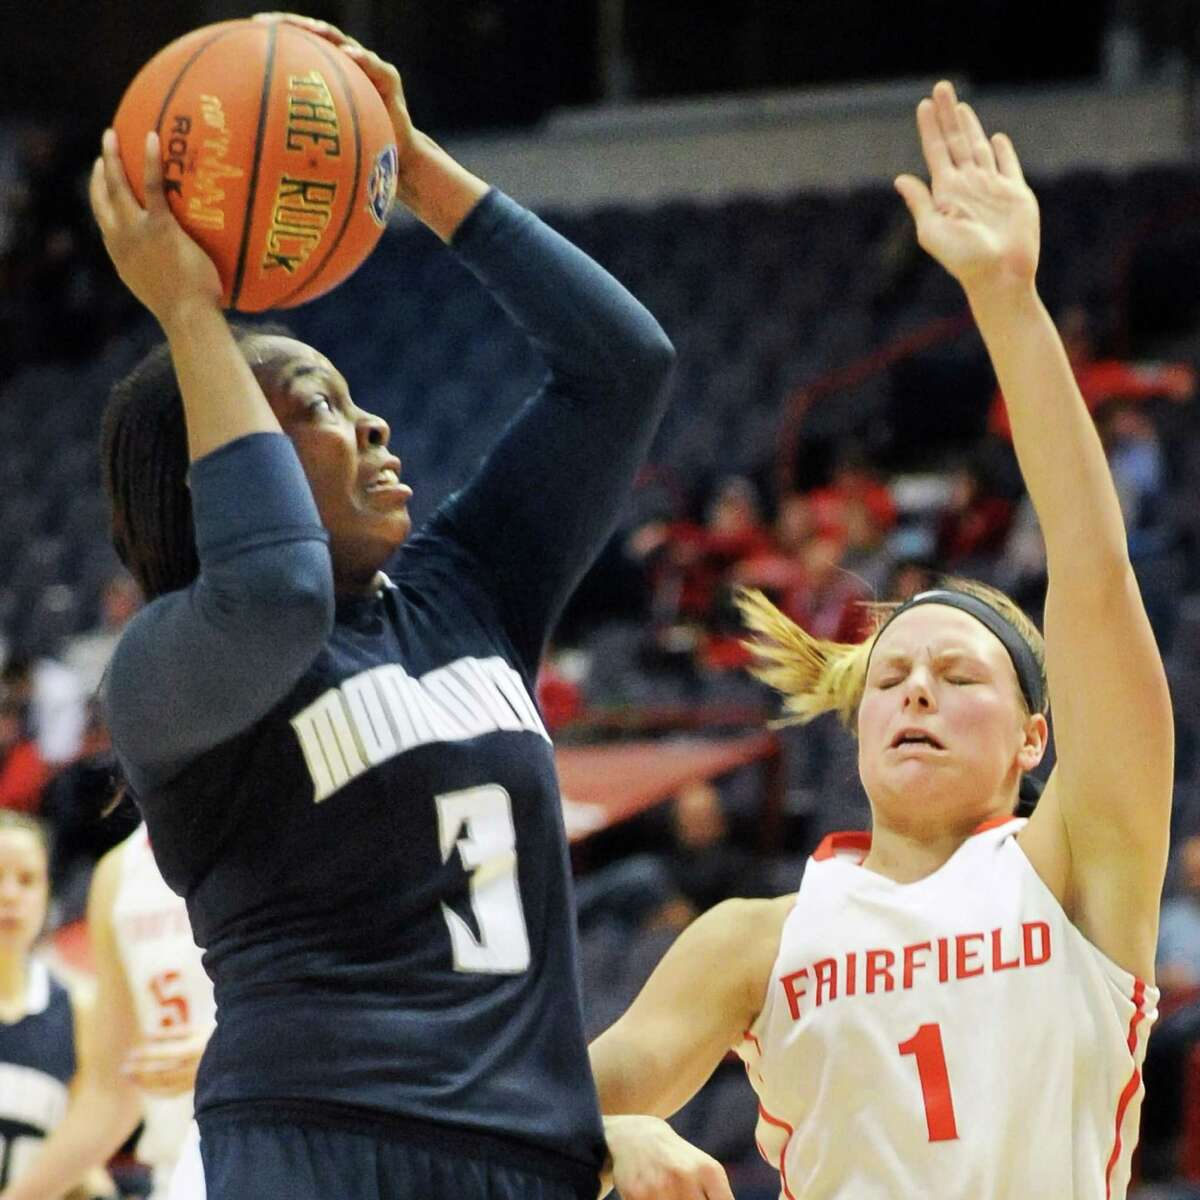 Monmouth's # 3 Jasmine McCall, left, gets a shot over Fairfield's #1 Lizzy Ball during their MAAC women's quarterfinal at the Times Union Center Saturday March 5, 2016 in Albany, NY. (John Carl D'Annibale / Times Union)